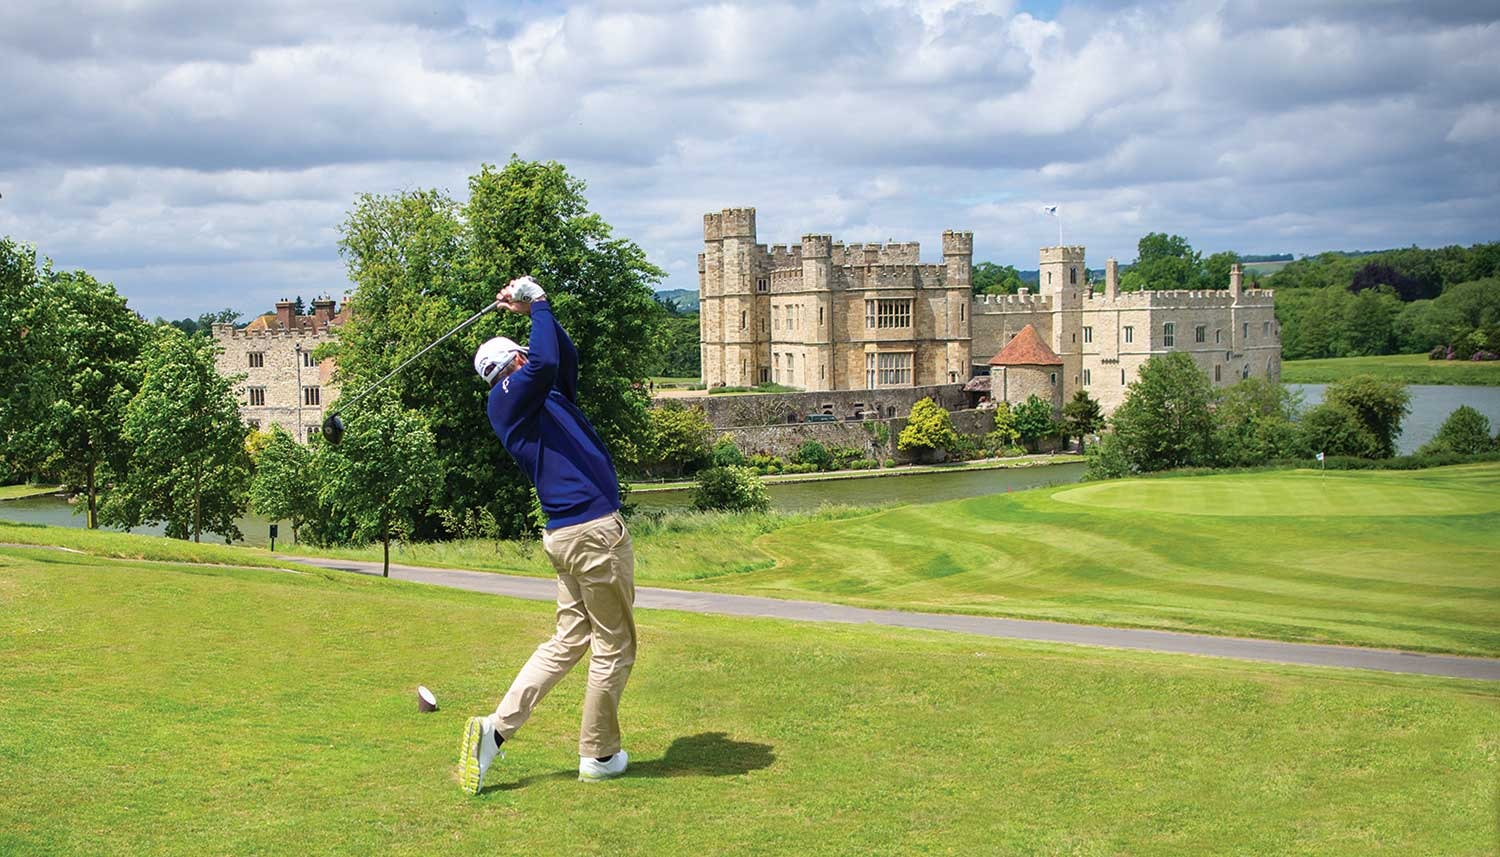 TG Advent Day 2: Win a 2ball with either lunch or breakfast at Leeds Castle sweepstakes